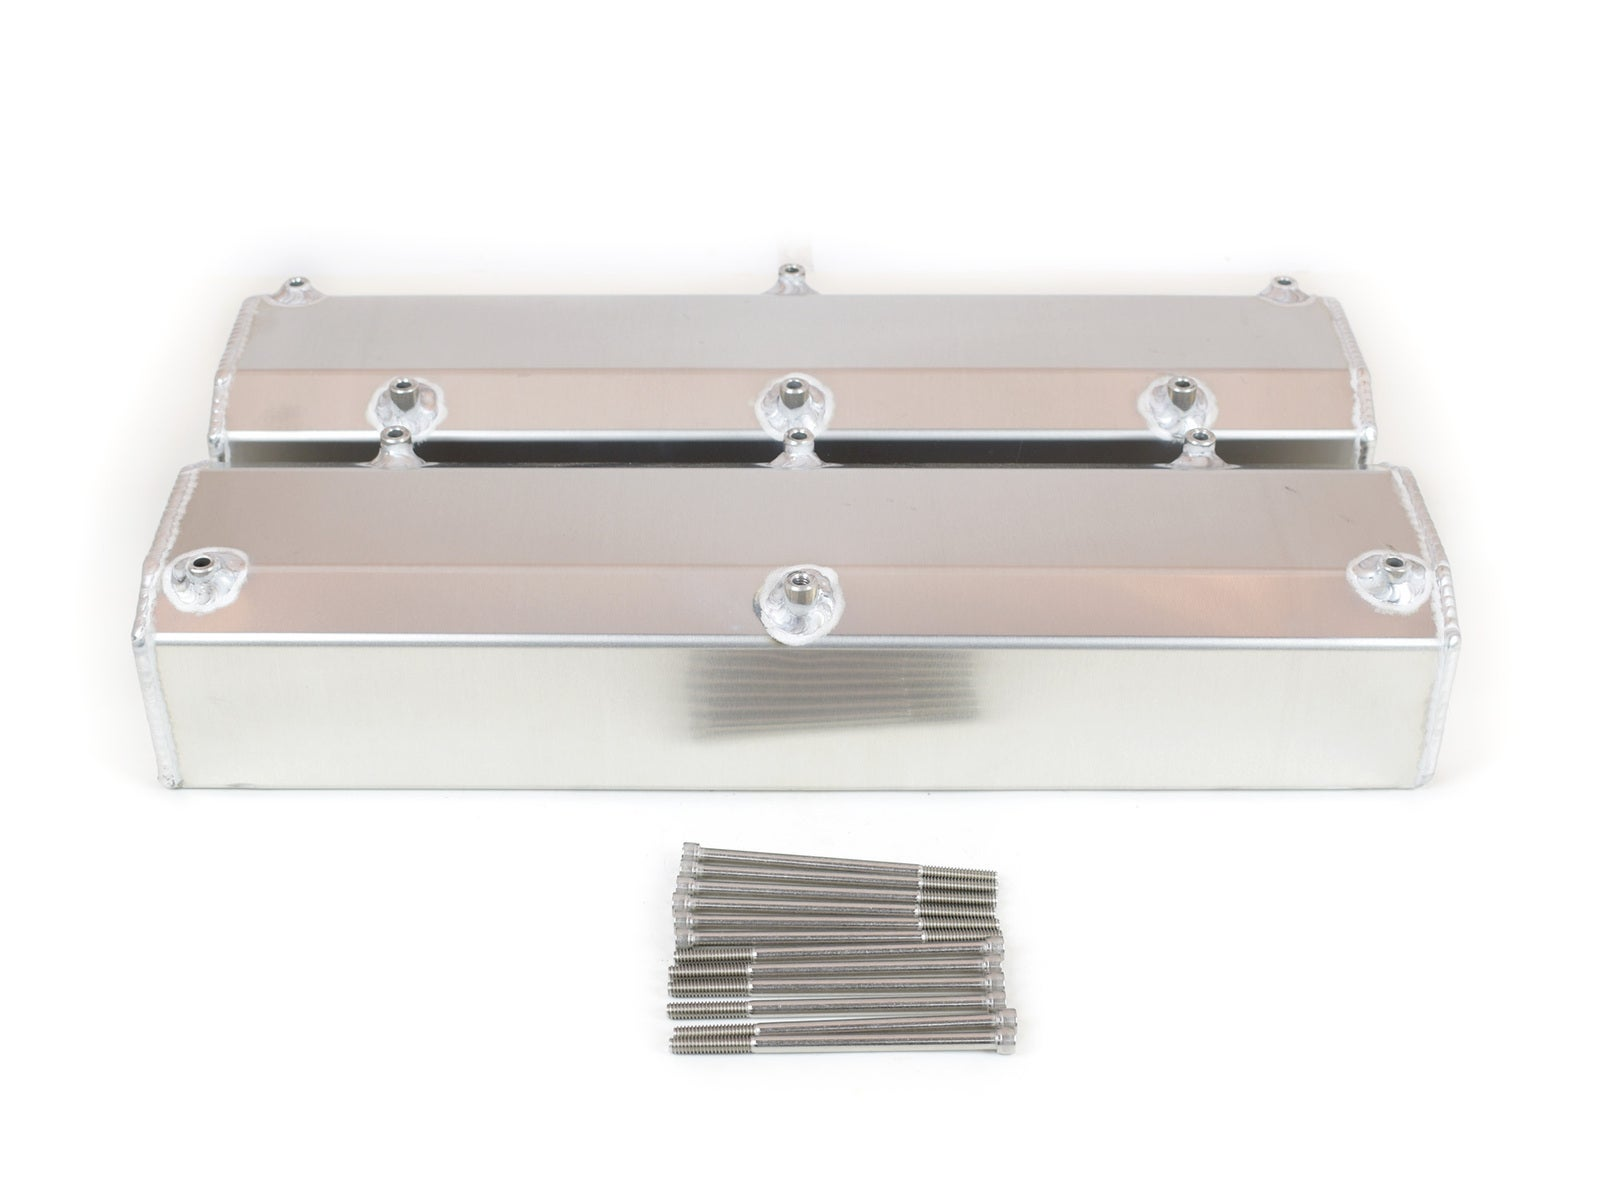 Canton Fabricated Aluminum Valve Cover For 302/351W Ford Small Block Ford Mustang II 1977 CN65300